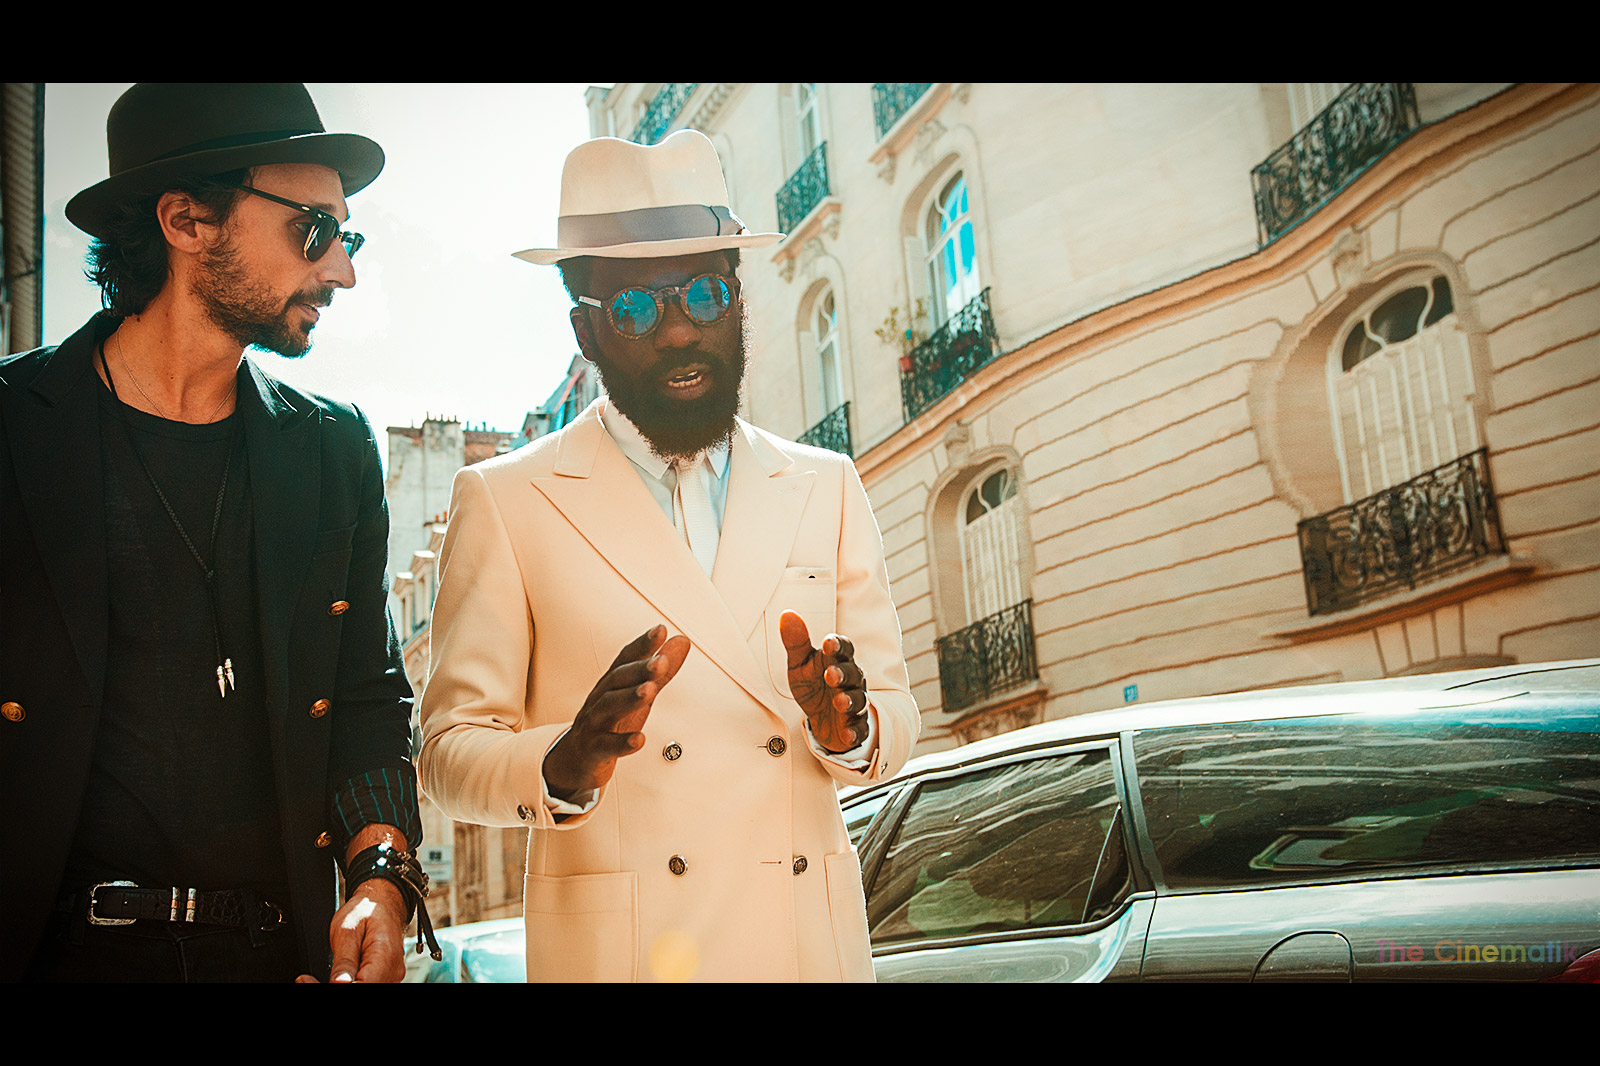 The Koople's founder Alexandre Elicha and Sam Lambert cinematic photograph at Paris Fashion Week by Kamal Lahmadi